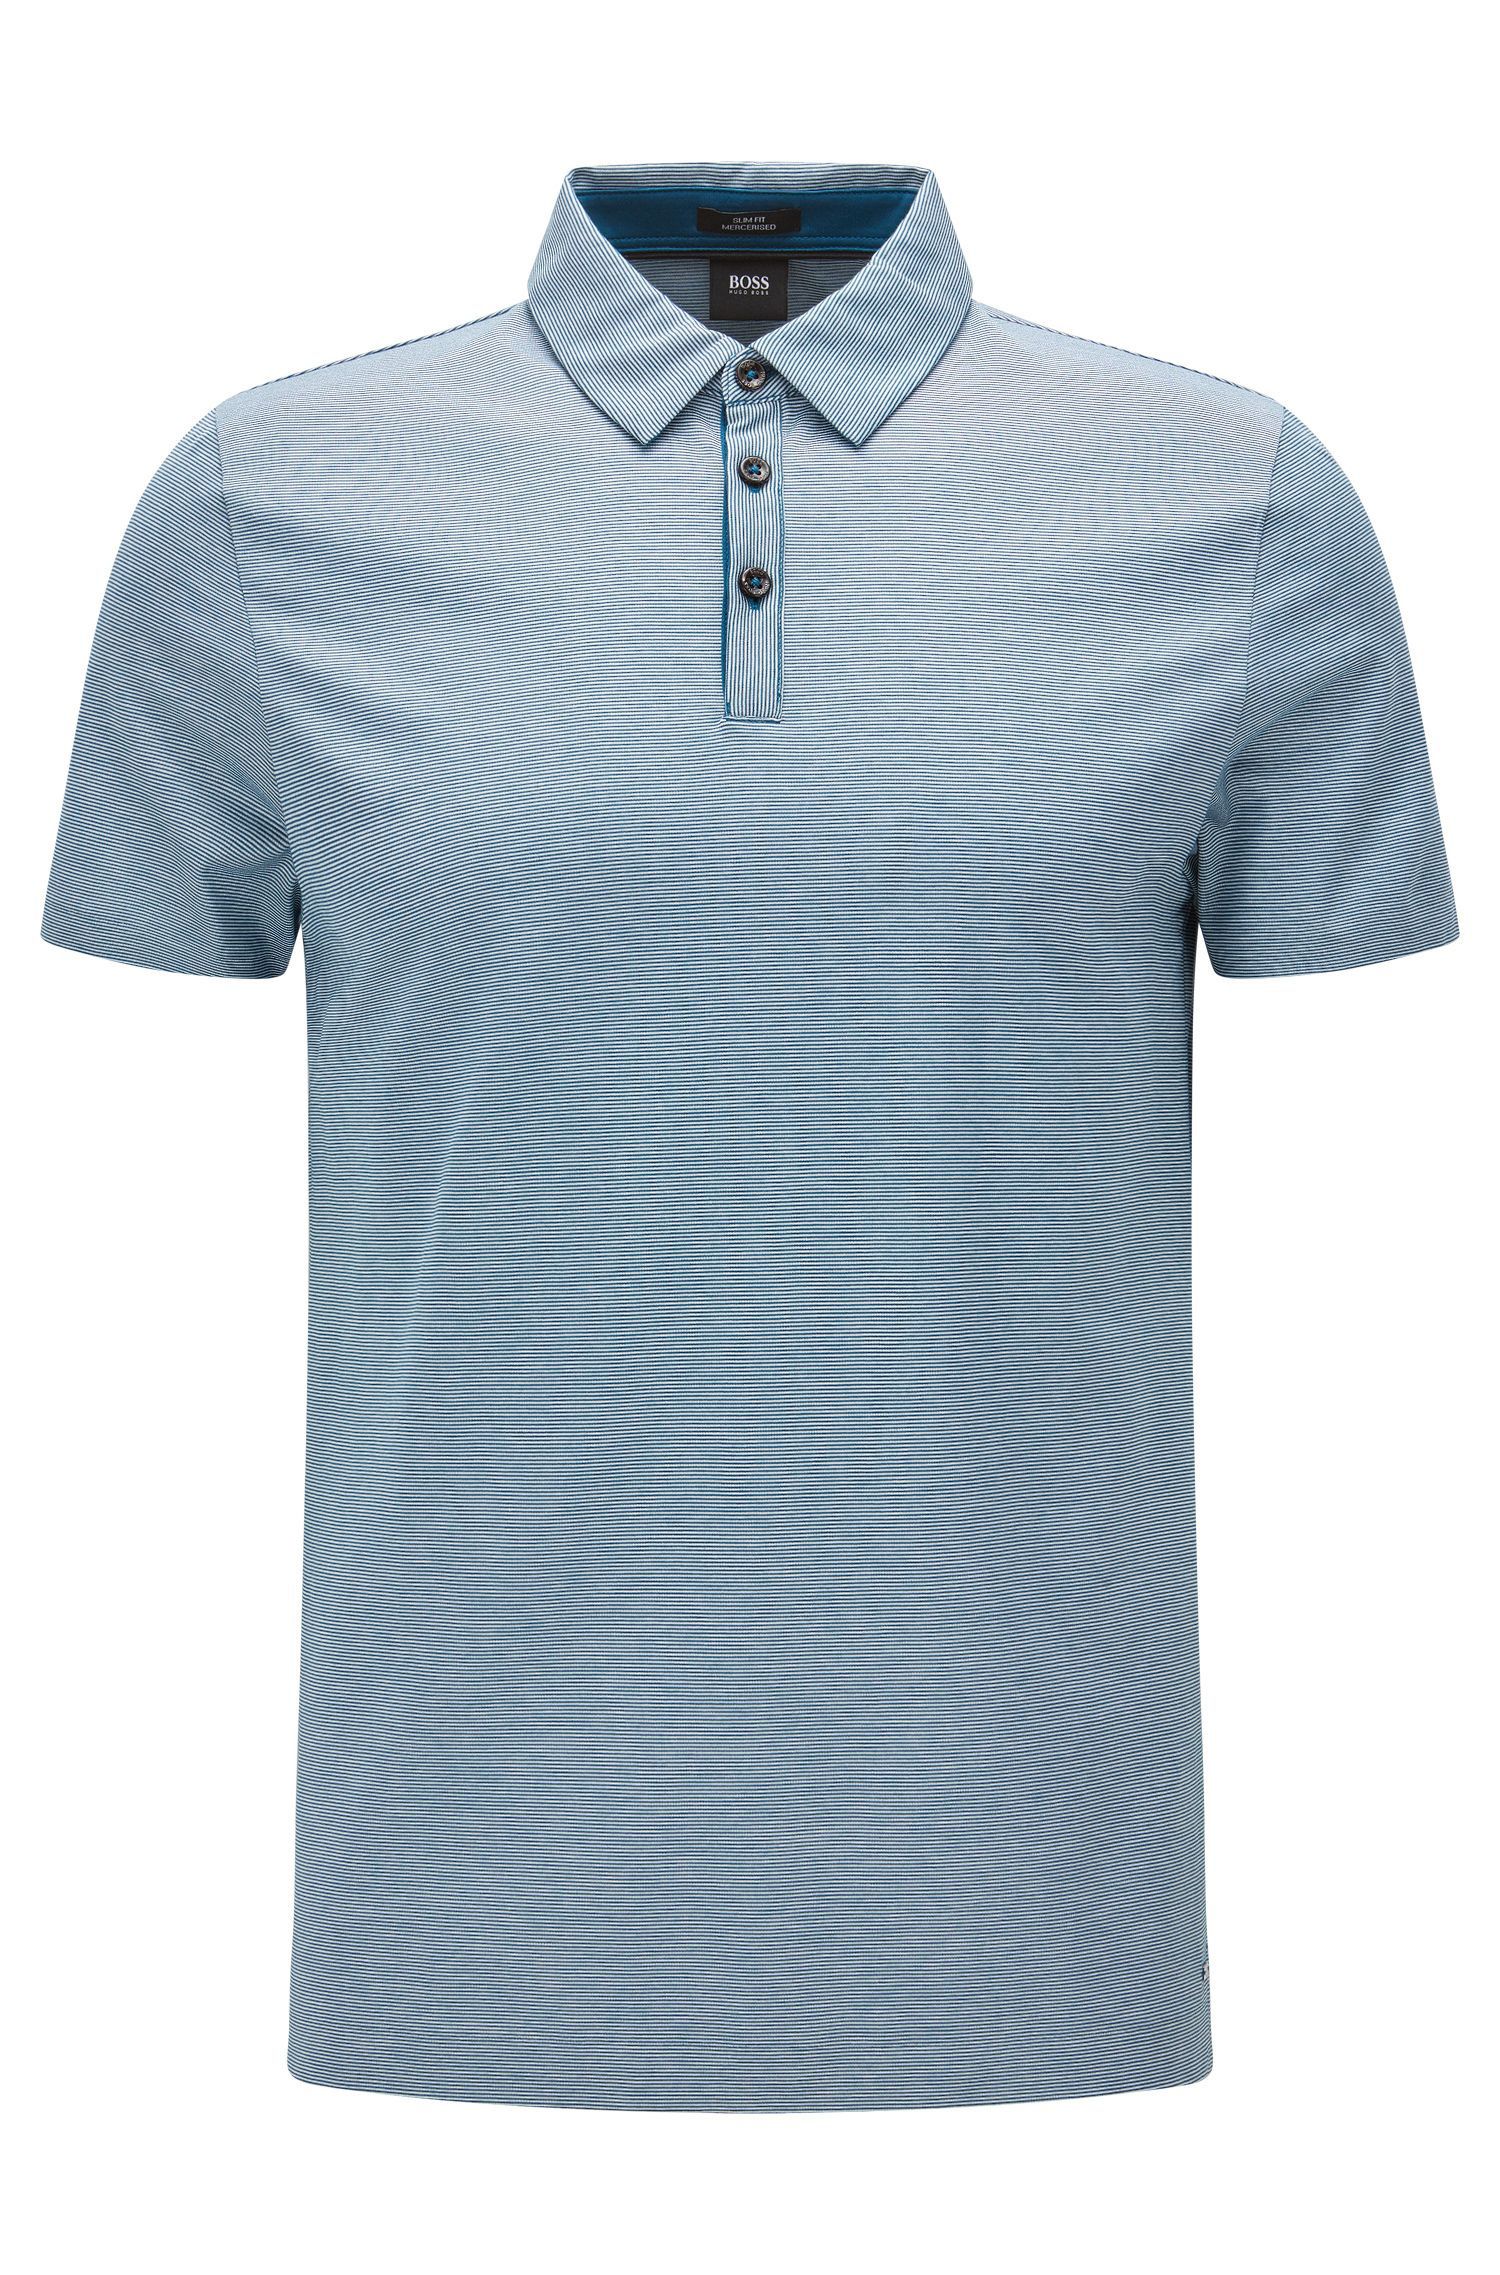 Slim-fit cotton polo shirt with modern collar